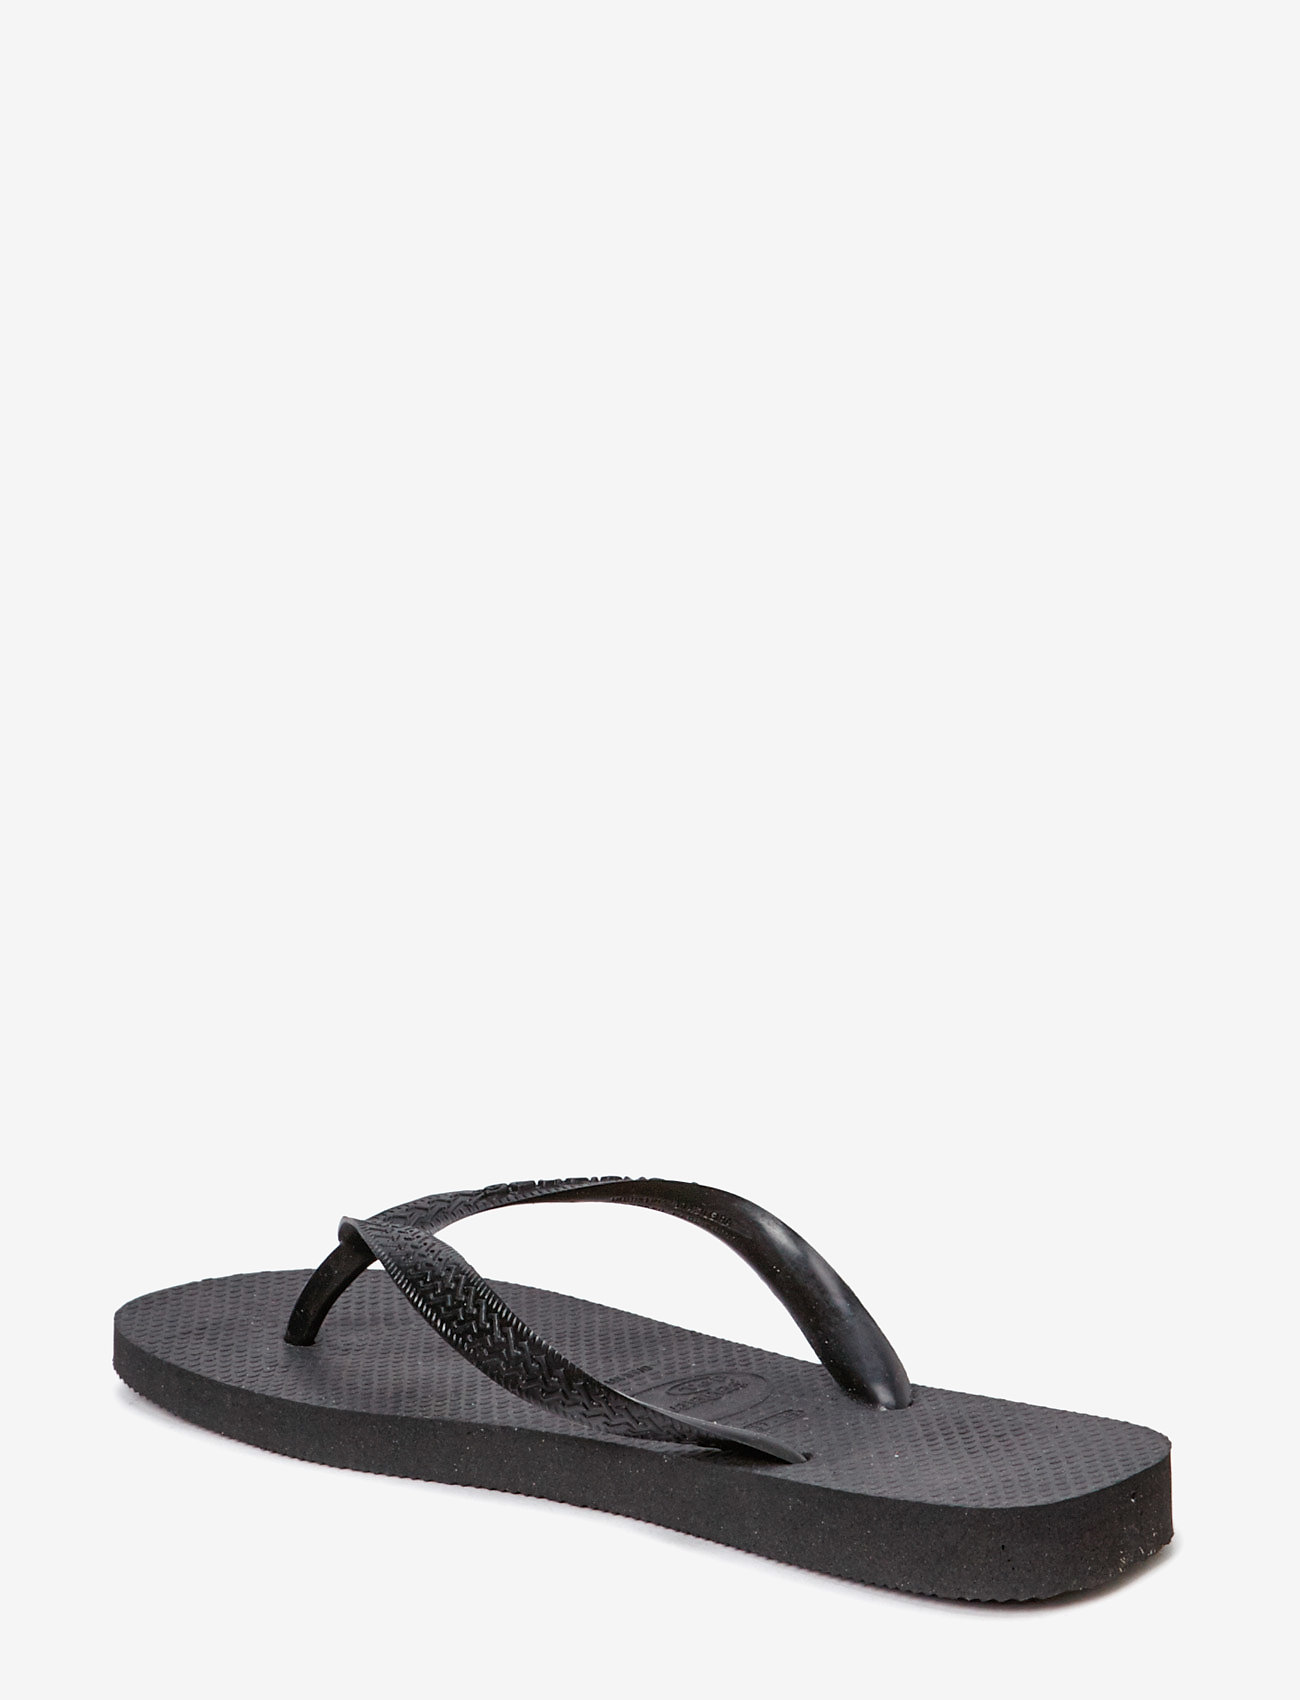 Havaianas - TOP - tongs - black - 1